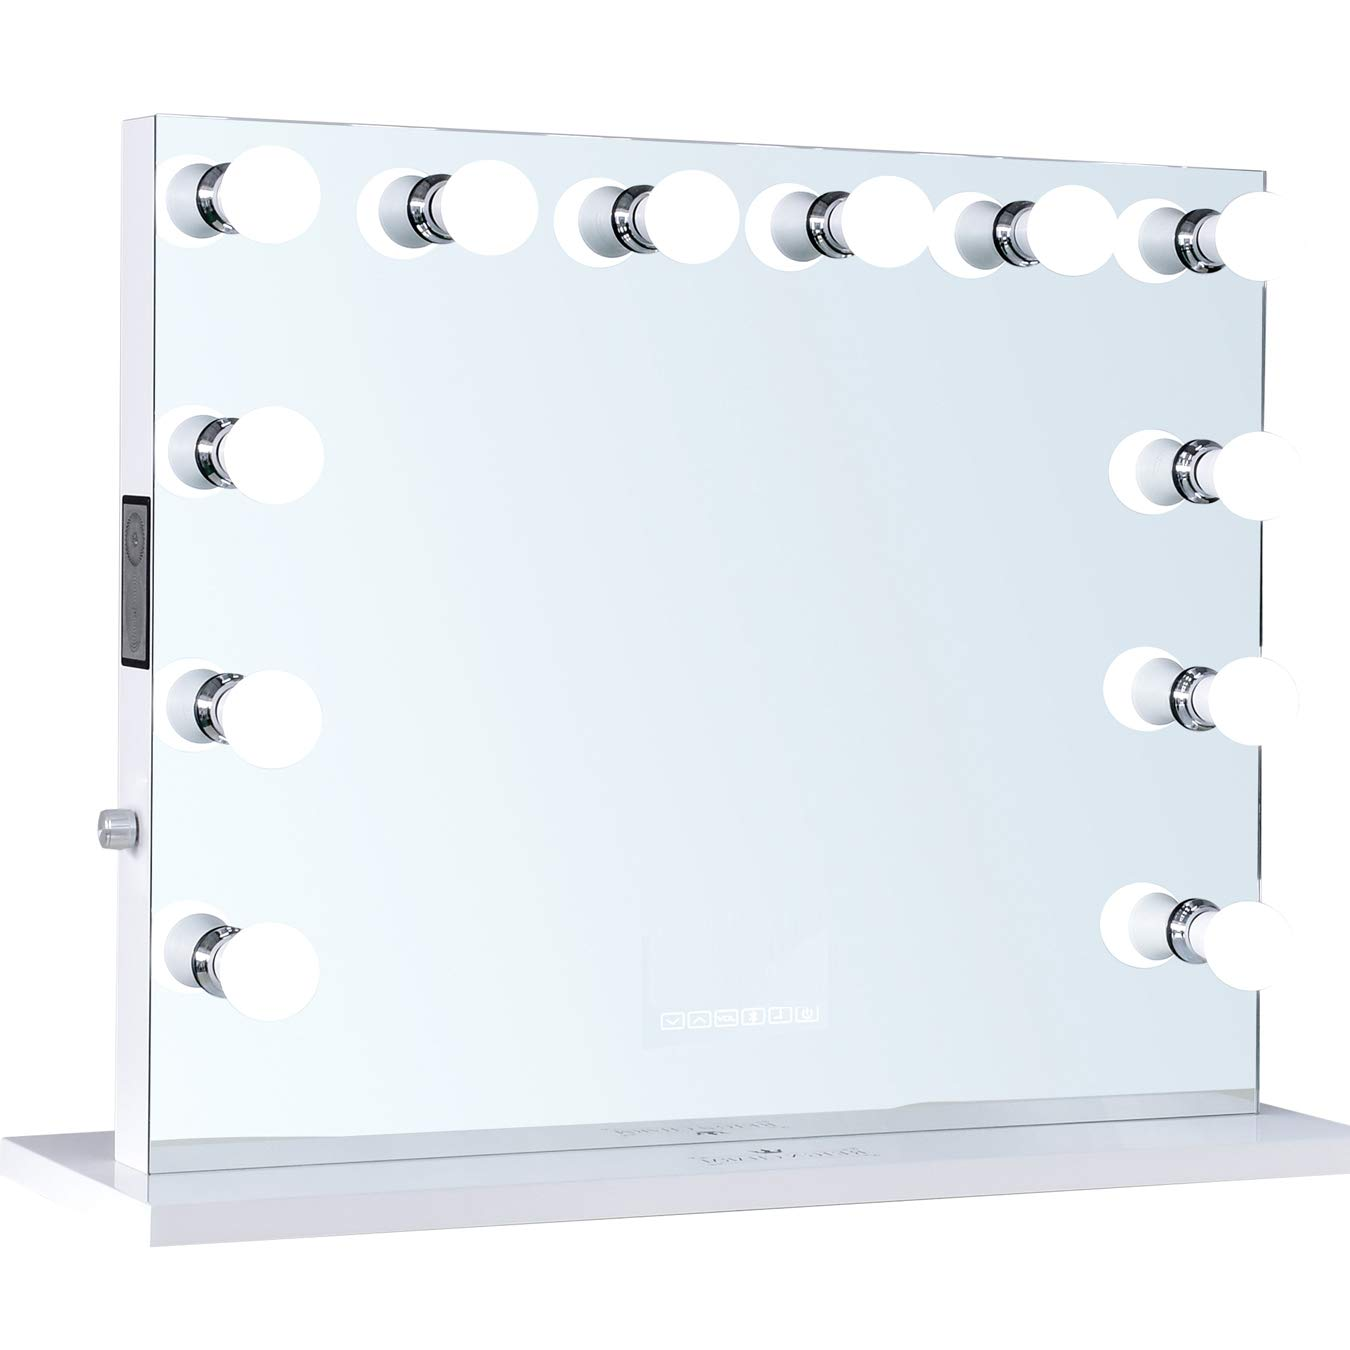 ReignCharm Hollywood Vanity Mirror Music Box, Bluetooth Speaker, 12 LED Lights, Dual Outlets & USB, 32-inches x 27-inches by Reign Charm